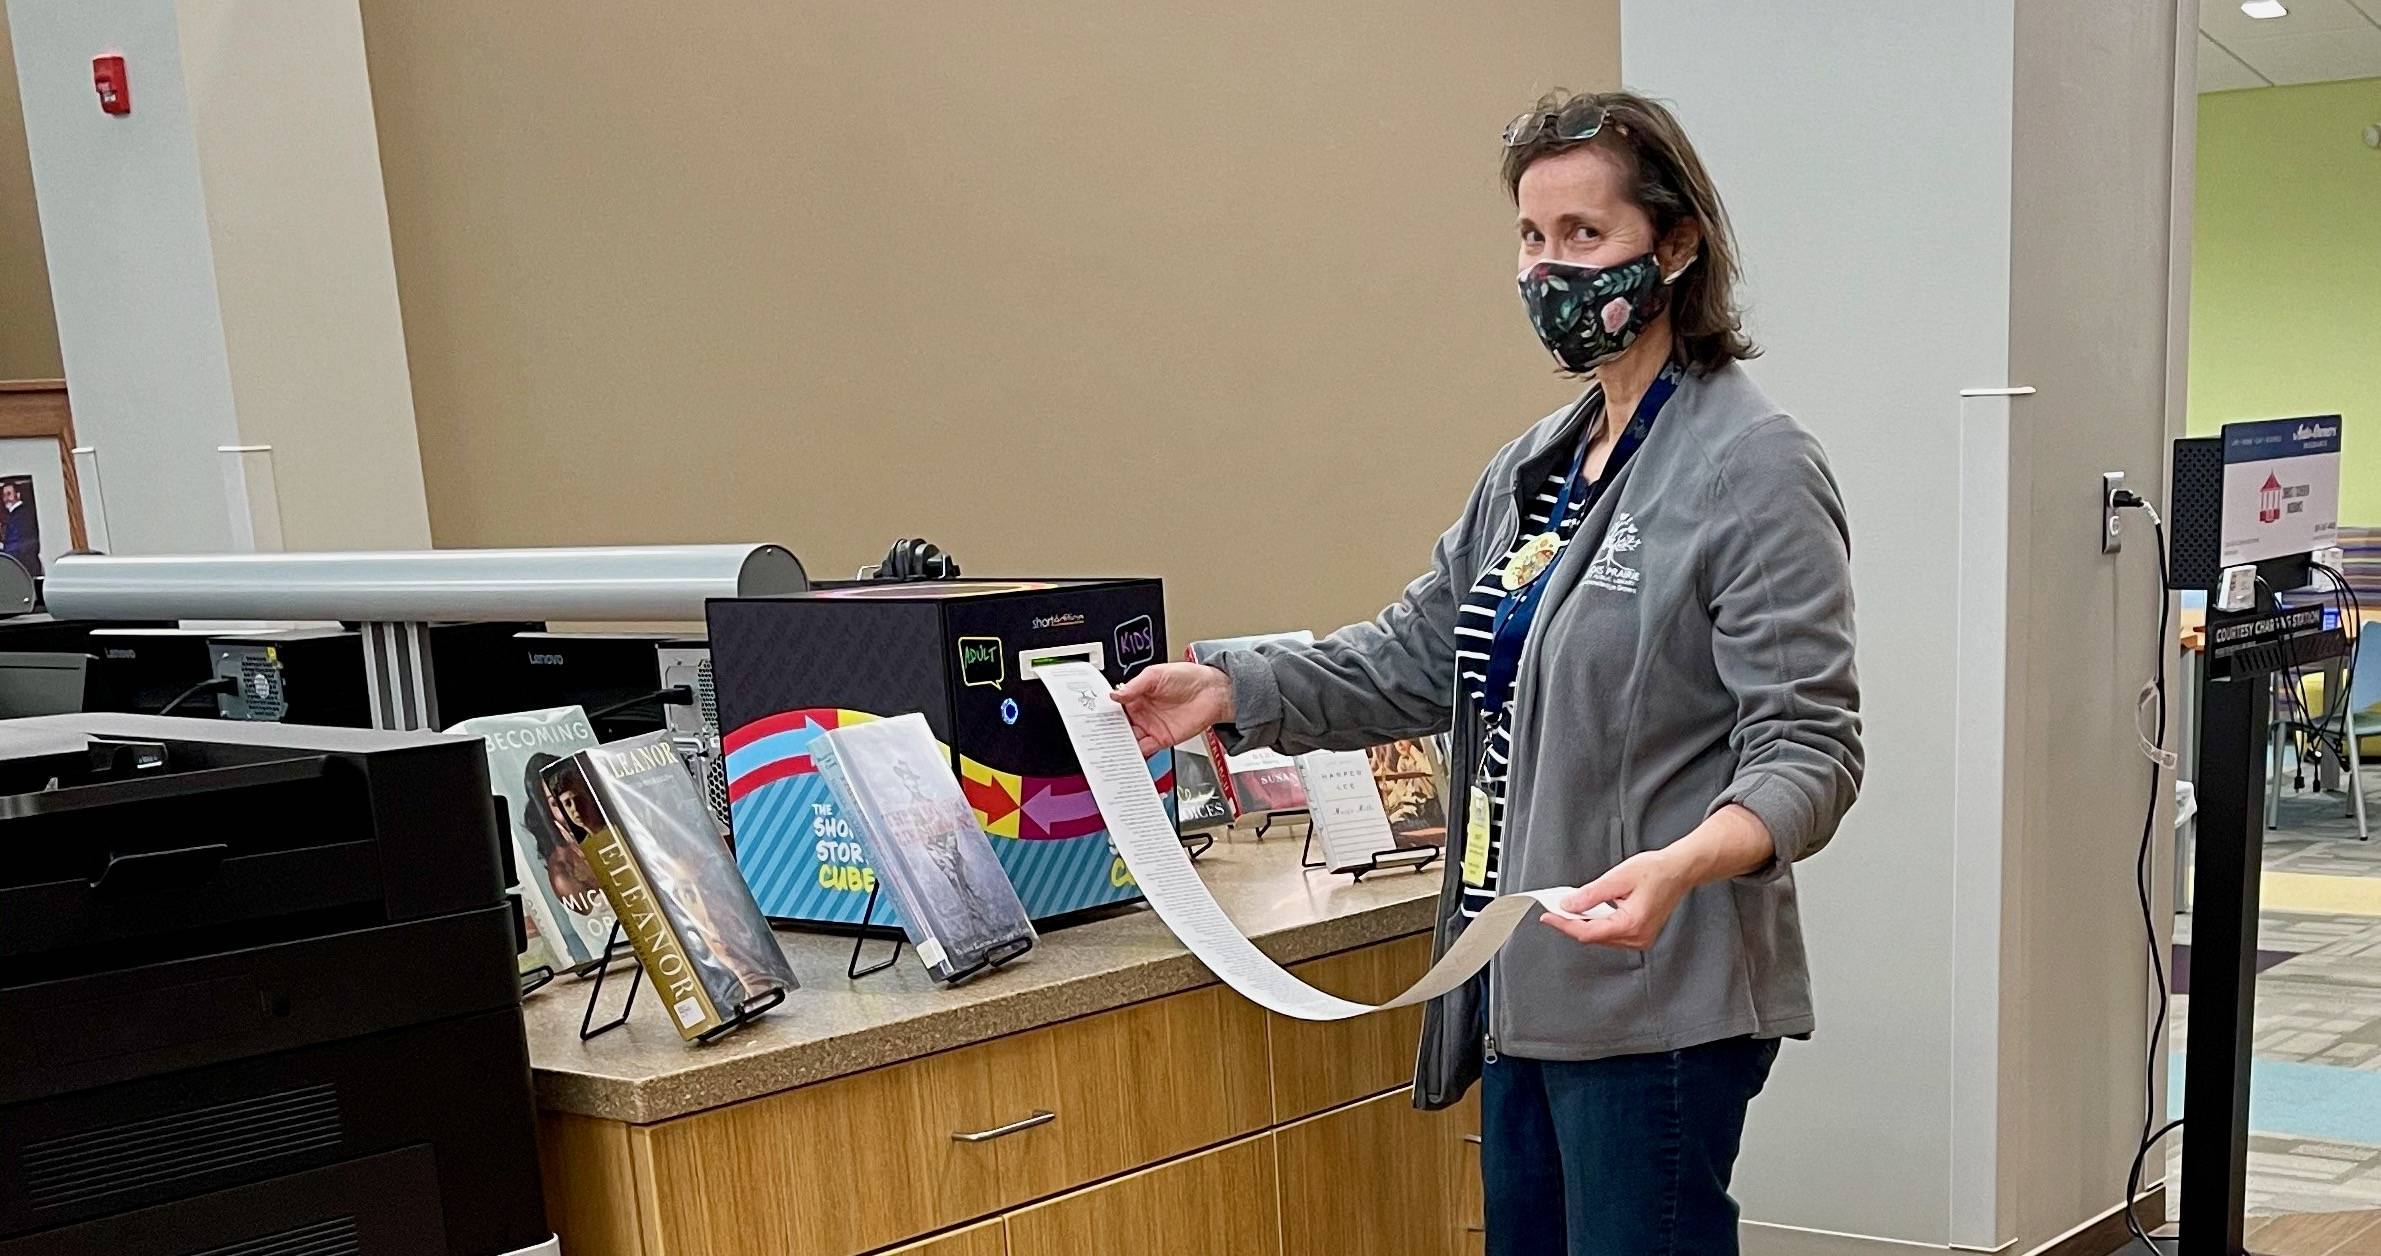 Amy Mientus tries out the Story Cube at the Illinois Prairie District Public Library in Woodford County, Ill. (Courtesy of Joel Shoemaker/Illinois Prairie District Public Library)